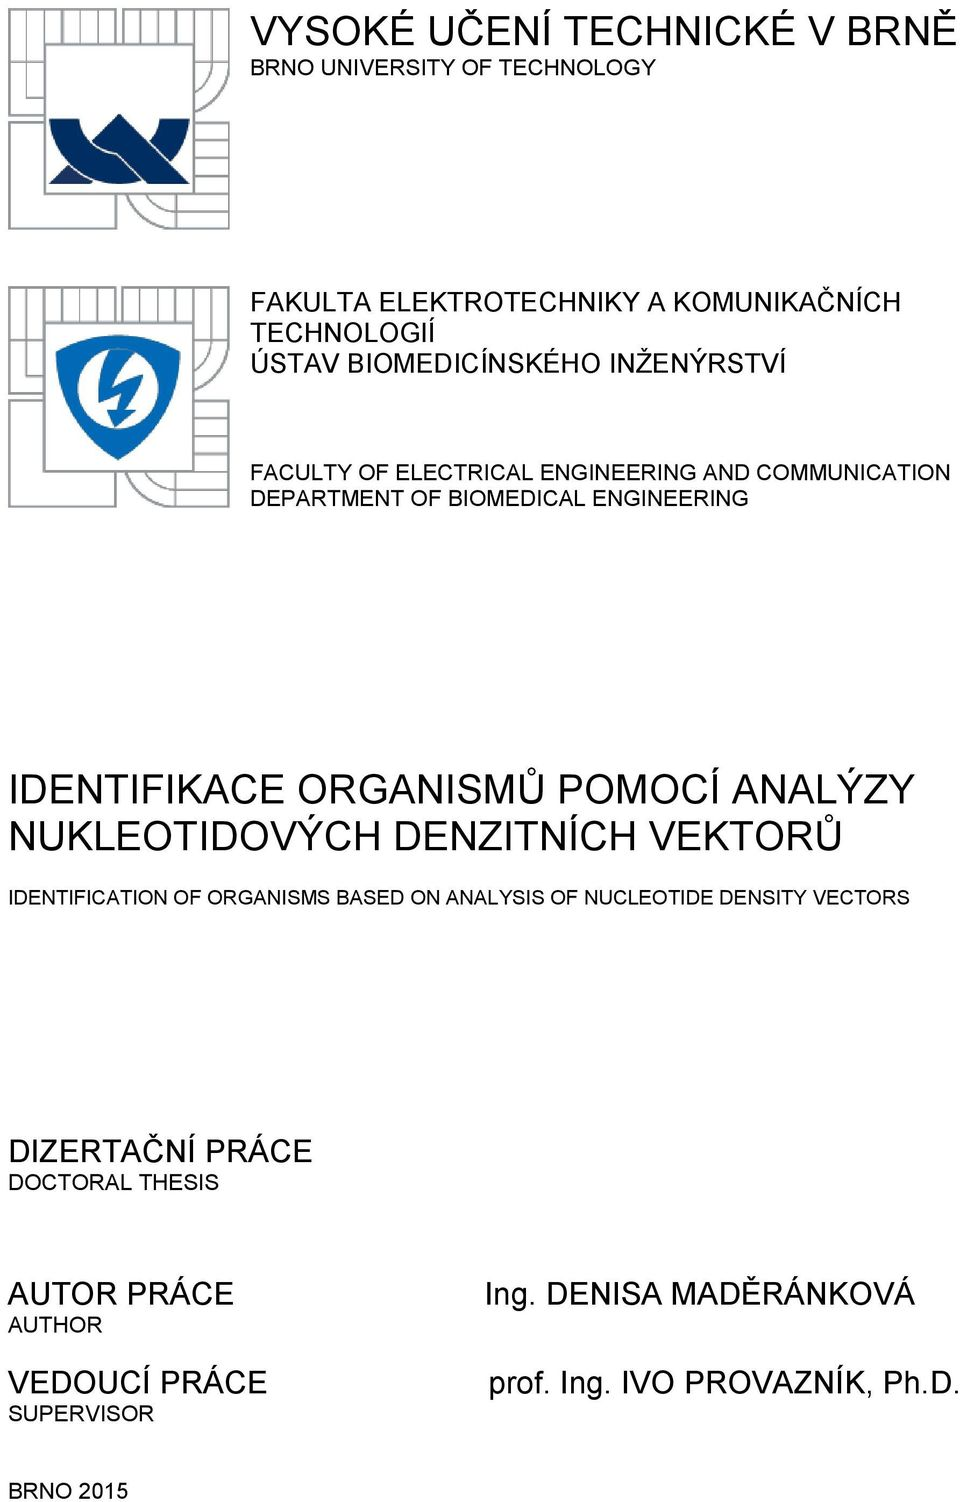 ORGANISMŮ POMOCÍ ANALÝZY NUKLEOTIDOVÝCH DENZITNÍCH VEKTORŮ IDENTIFICATION OF ORGANISMS BASED ON ANALYSIS OF NUCLEOTIDE DENSITY